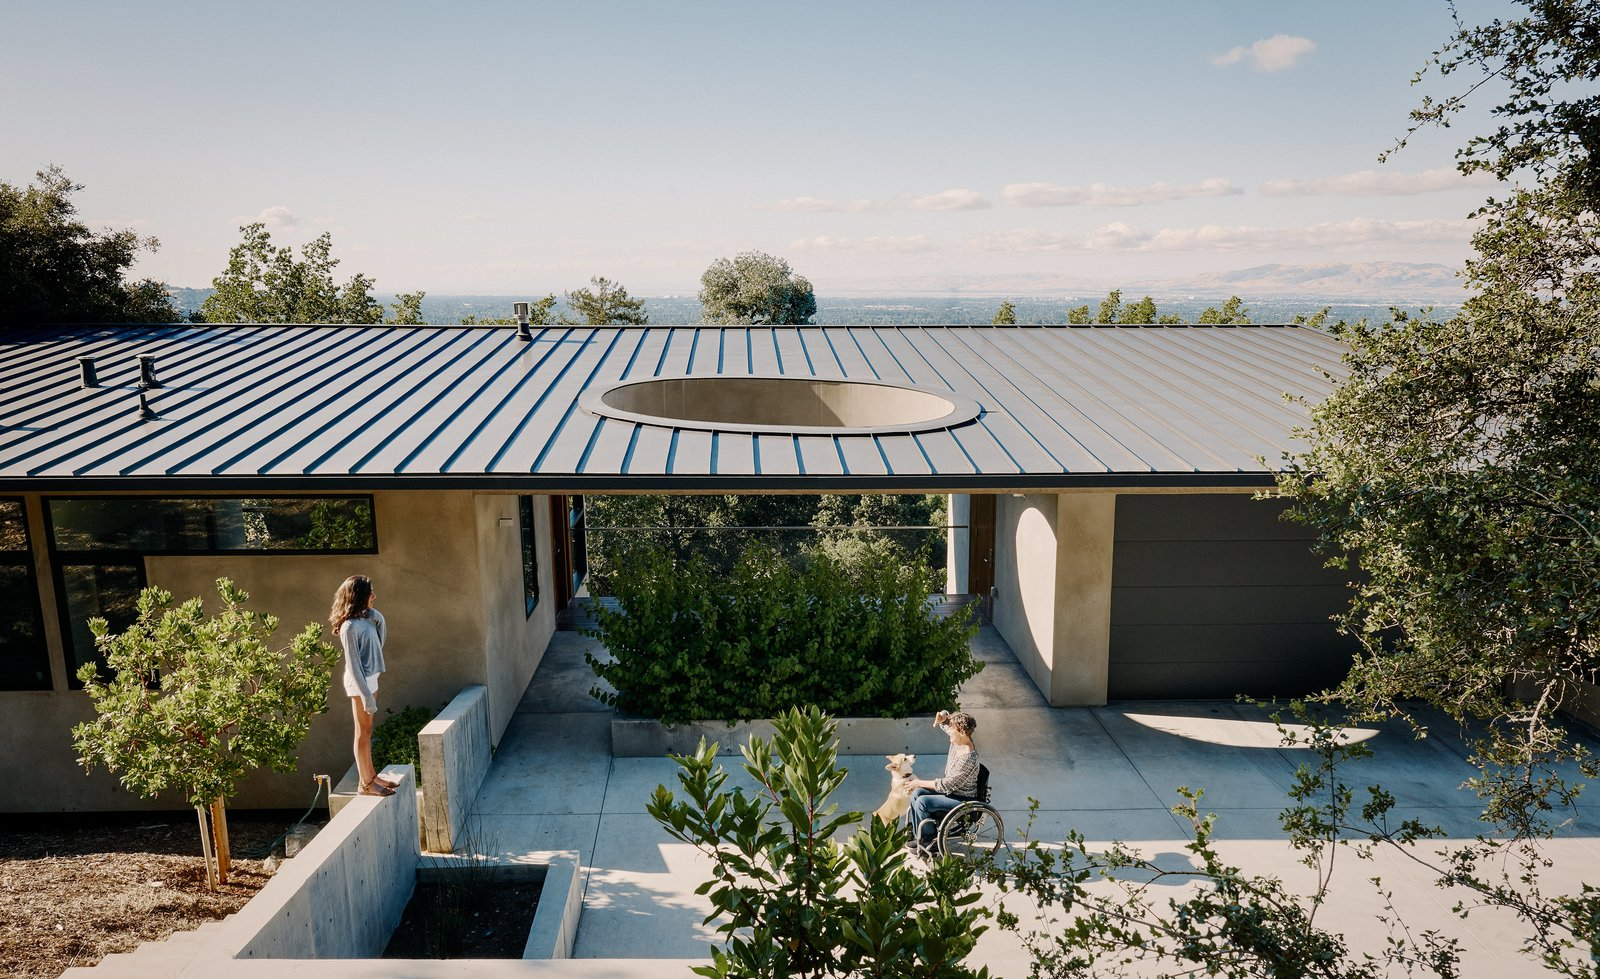 Exterior, House Building Type, Stucco Siding Material, and Metal Roof Material With both an aging relative and a wheelchair user in mind, architect Neal Schwartz creates a family guesthouse designed to be accessible to all. Resident Elizabeth Twaddell enjoys the weather with her daughter Uma outside the guesthouse Schwartz designed for her mother-in-law, Surendra, who frequently visits for extended stays. A concrete driveway forks off from the main house to lead to a covered breezeway, sited between the new 775-square-foot structure and a two-car garage.  Photo 2 of 9 in A Family Guesthouse Made for Accessibility, Aging in Place—and That View